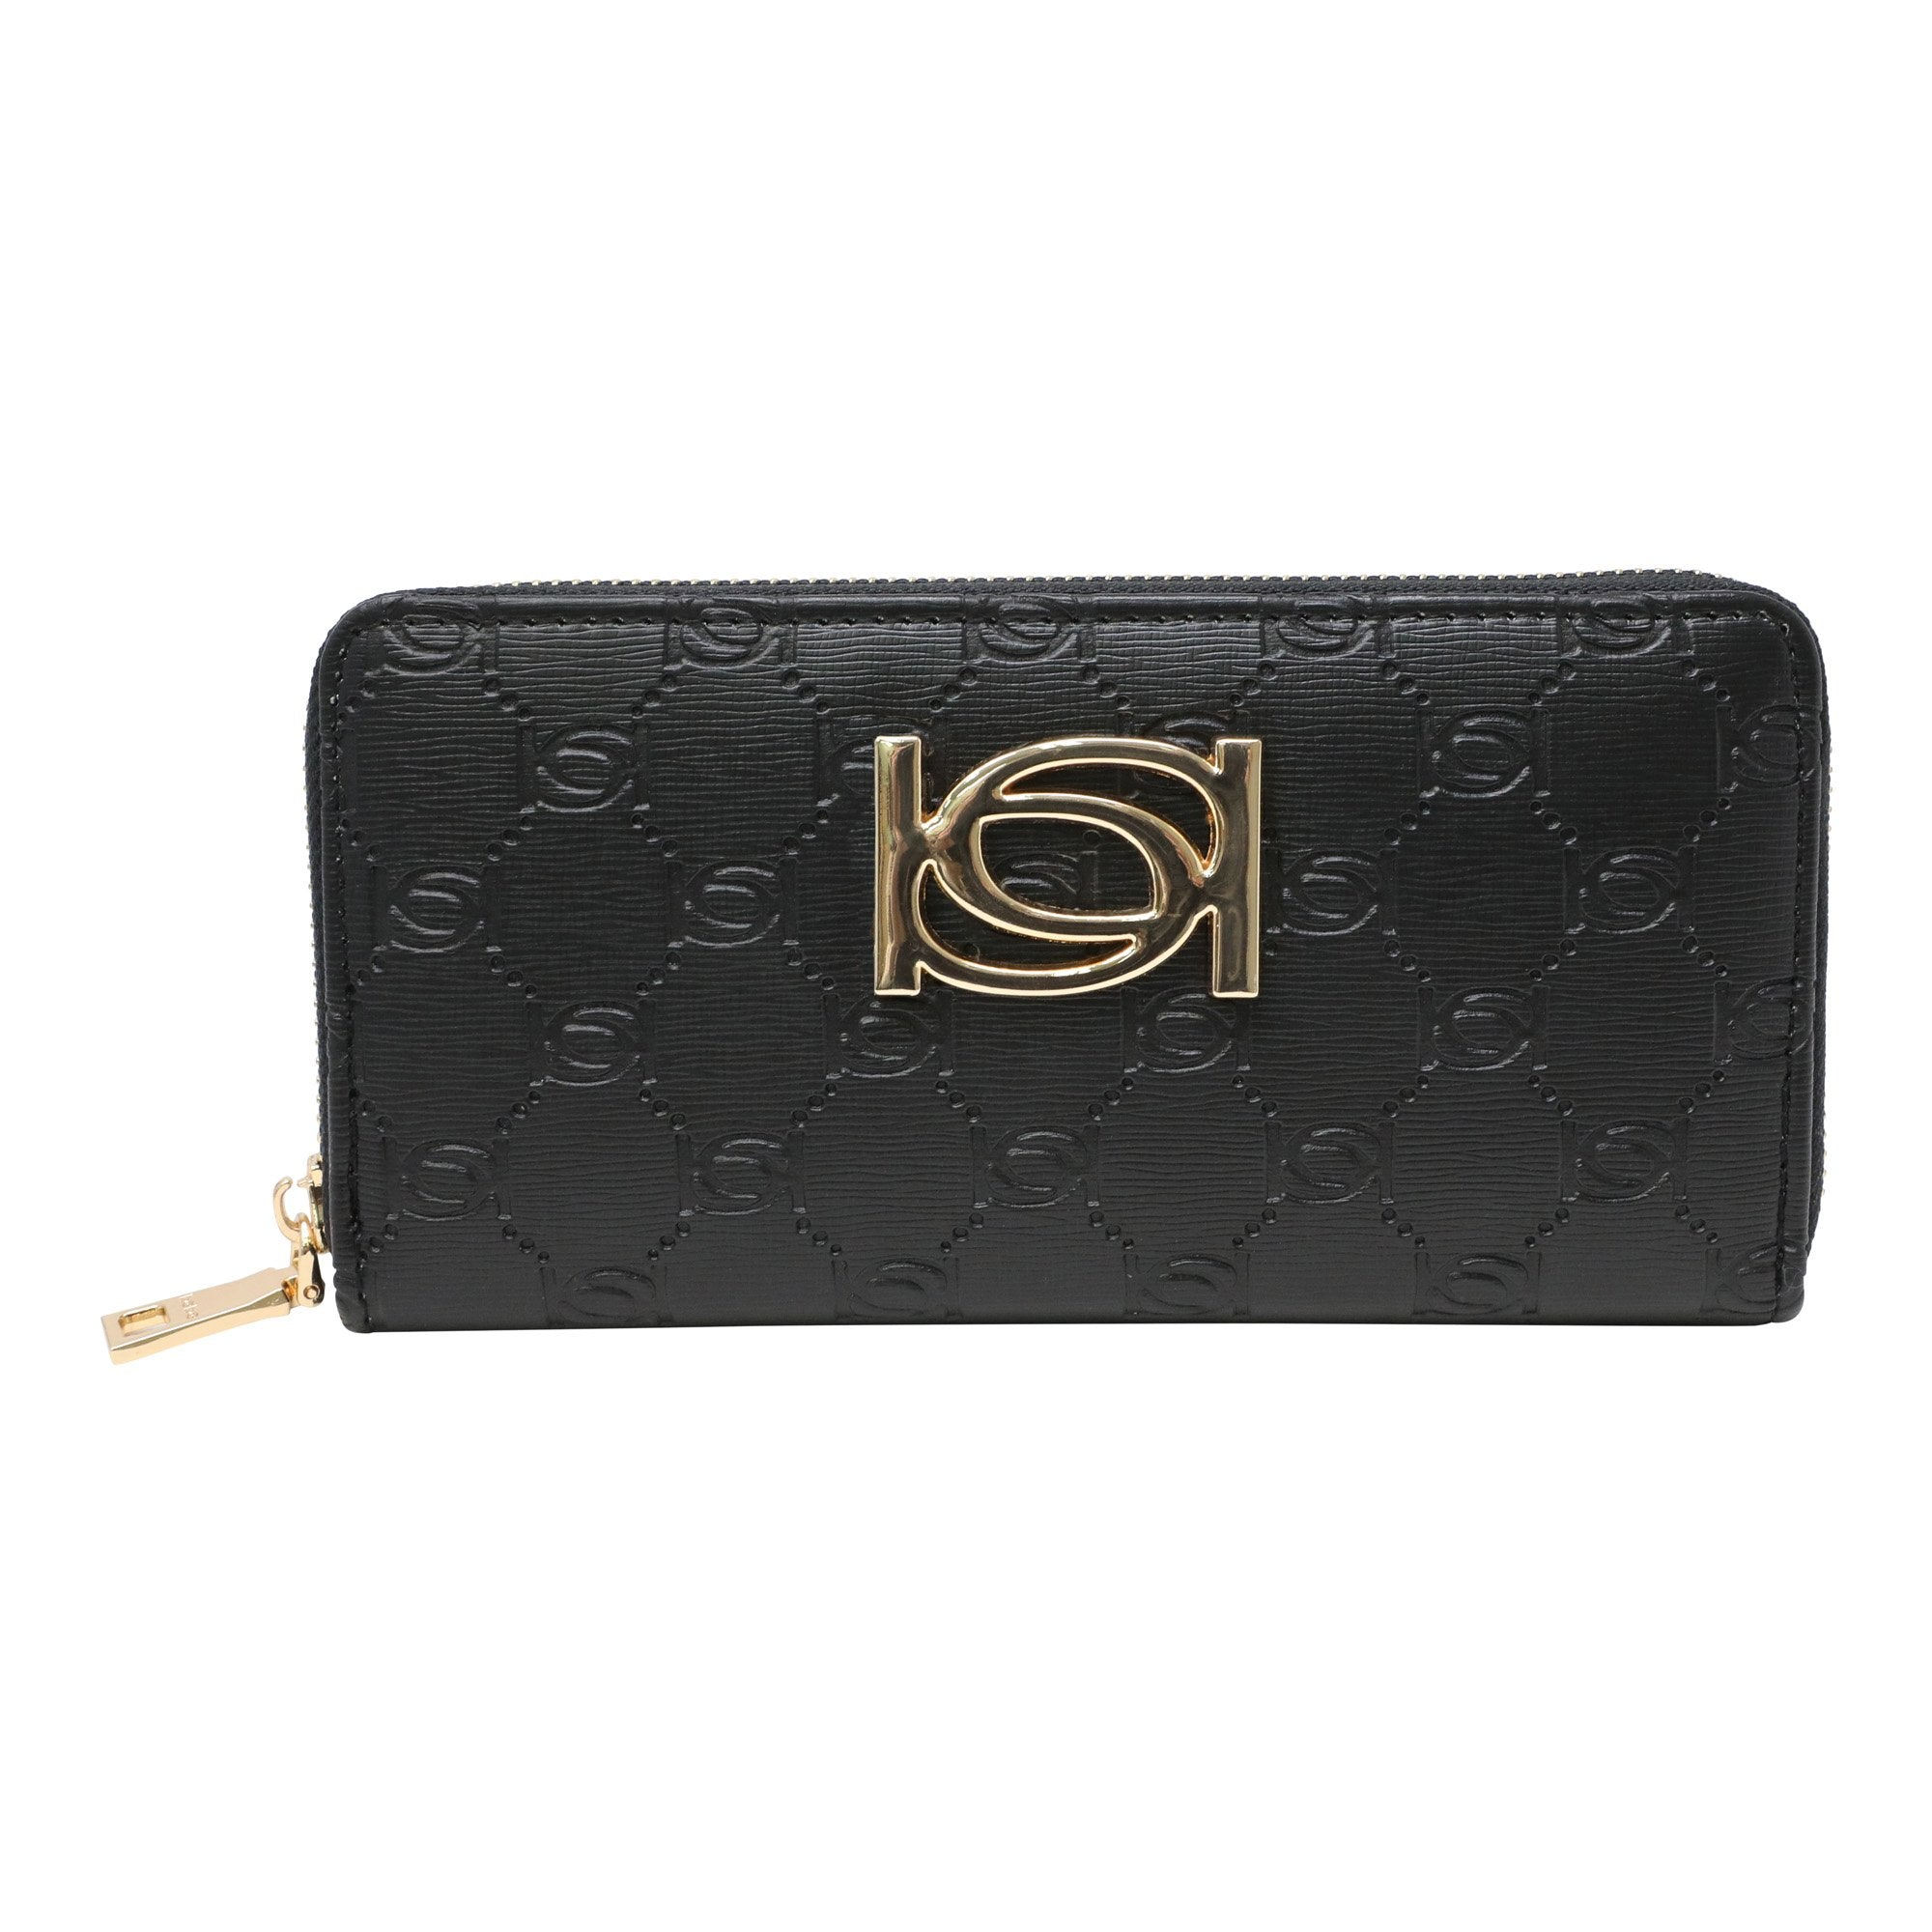 Bebe Women's Patricia Emboss Zip Around Wallet in Black Polyester